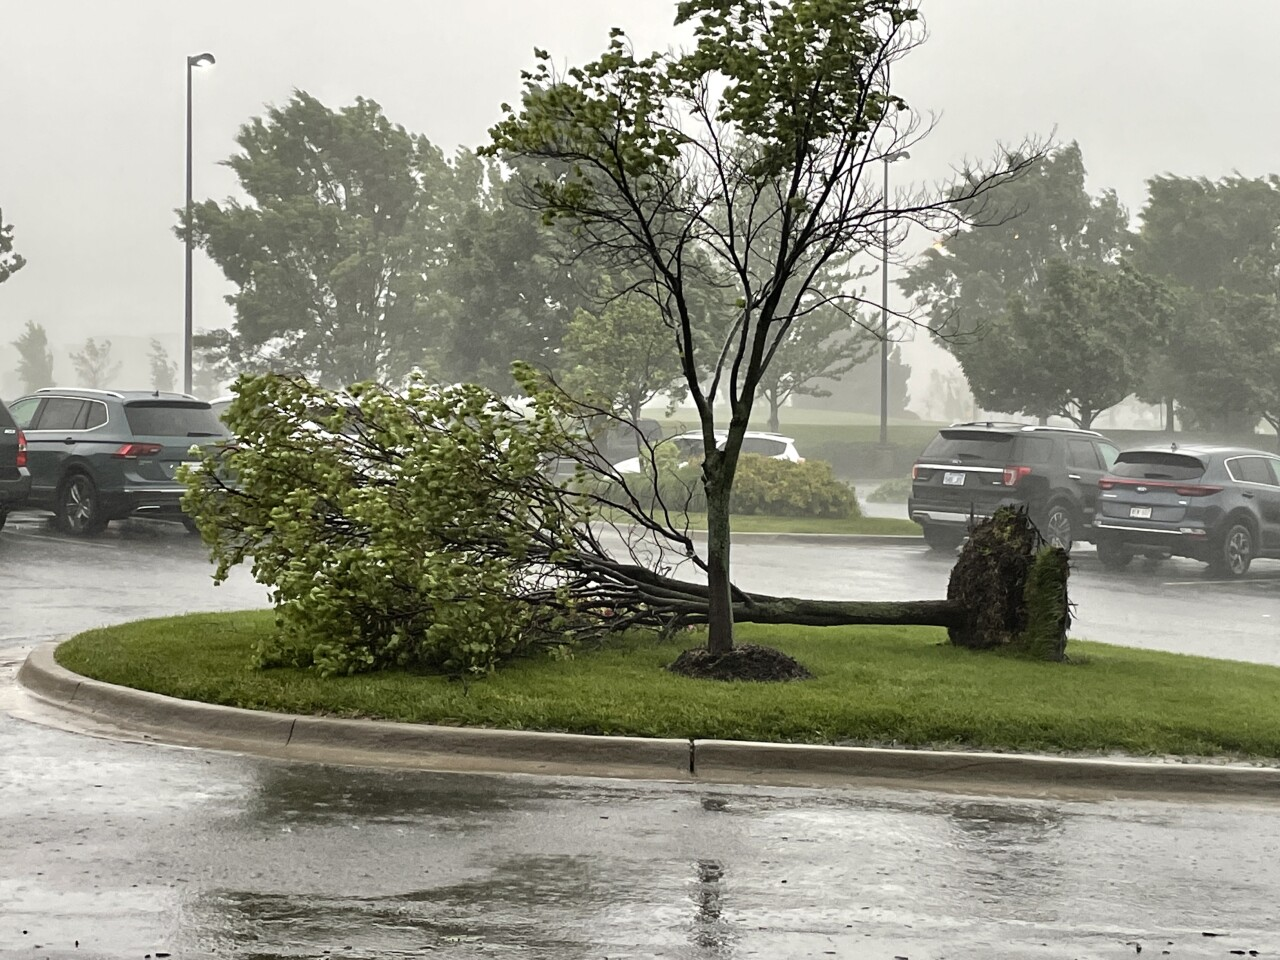 tree uprooted by storms in Overland park